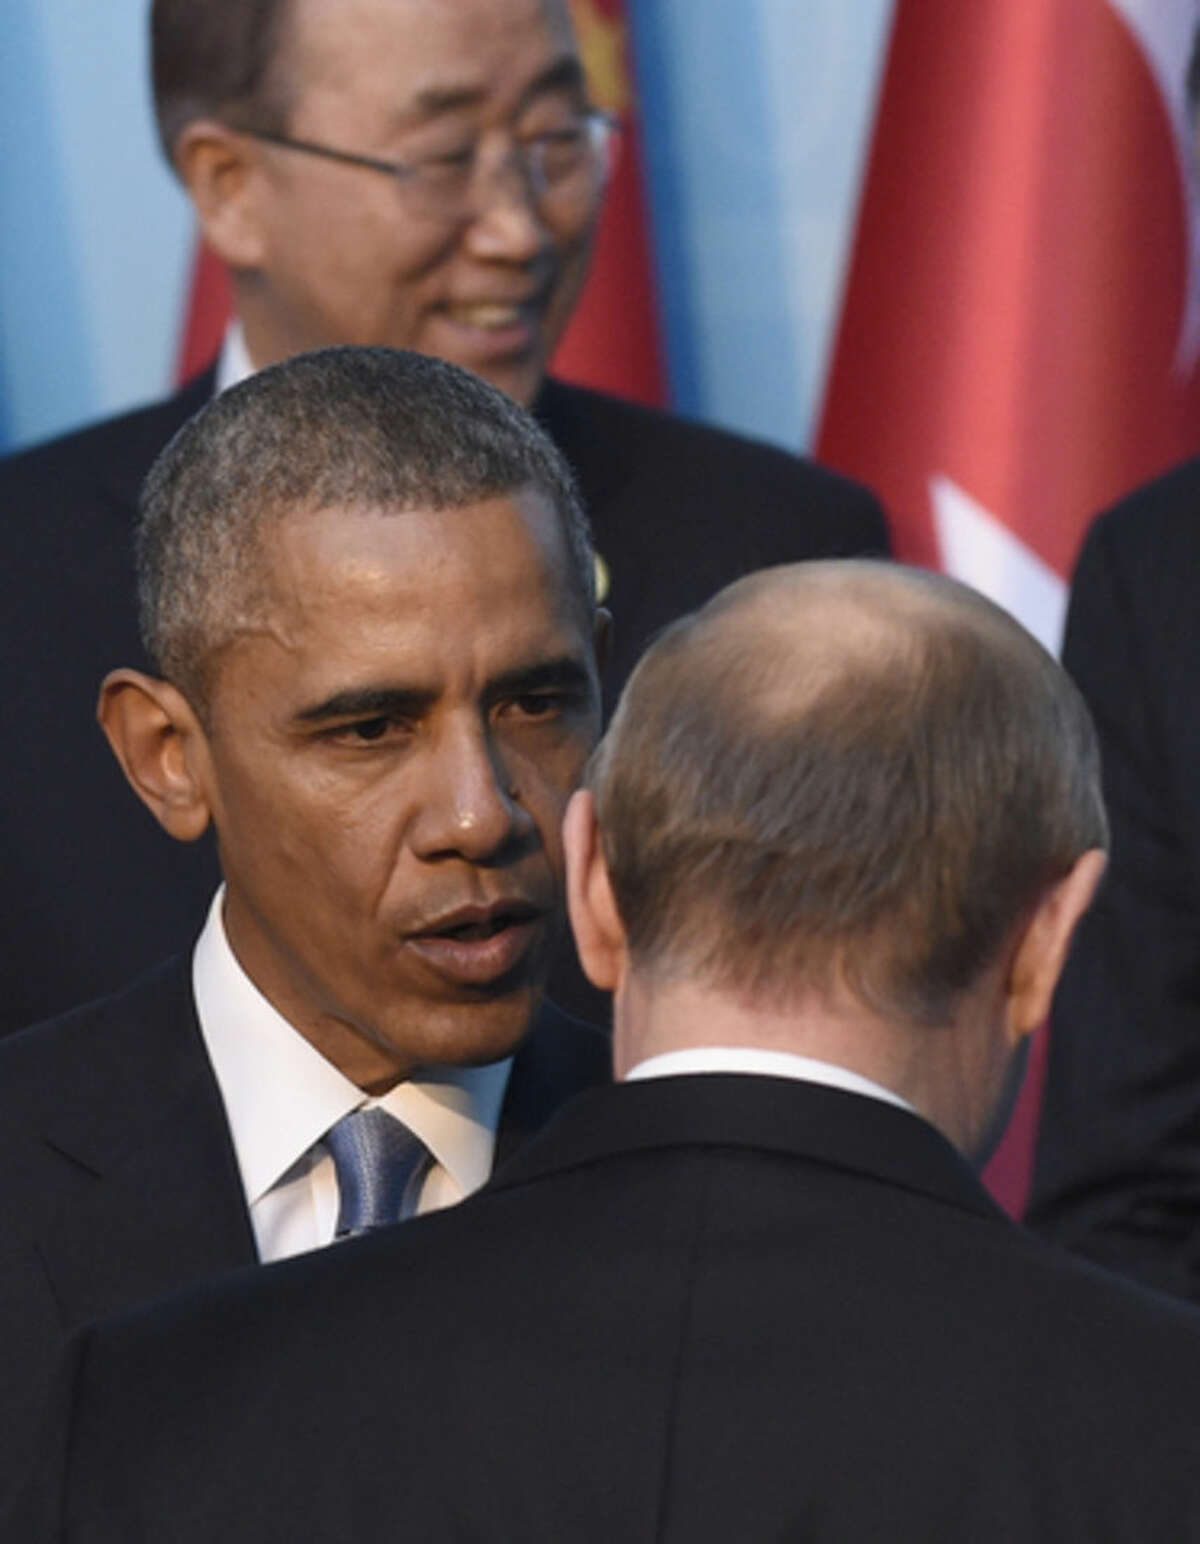 In this Sunday, Nov. 15, 2015, file photo, US President Barack Obama, left, talks with Russia?s President Vladimir Putin, as they arrive for a group photo with other leaders for the G-20 Summit in Antalya, Turkey. For President Vladimir Putin, the terror attacks in Paris marked a watershed moment in relations with the West. This week's summit in Turkey made it clear that the U.S. and its allies have warmed to the idea of closer ties with Russia, whose help they need to confront the challenge of the Islamic State group. (AP Photo/Susan Walsh, File)